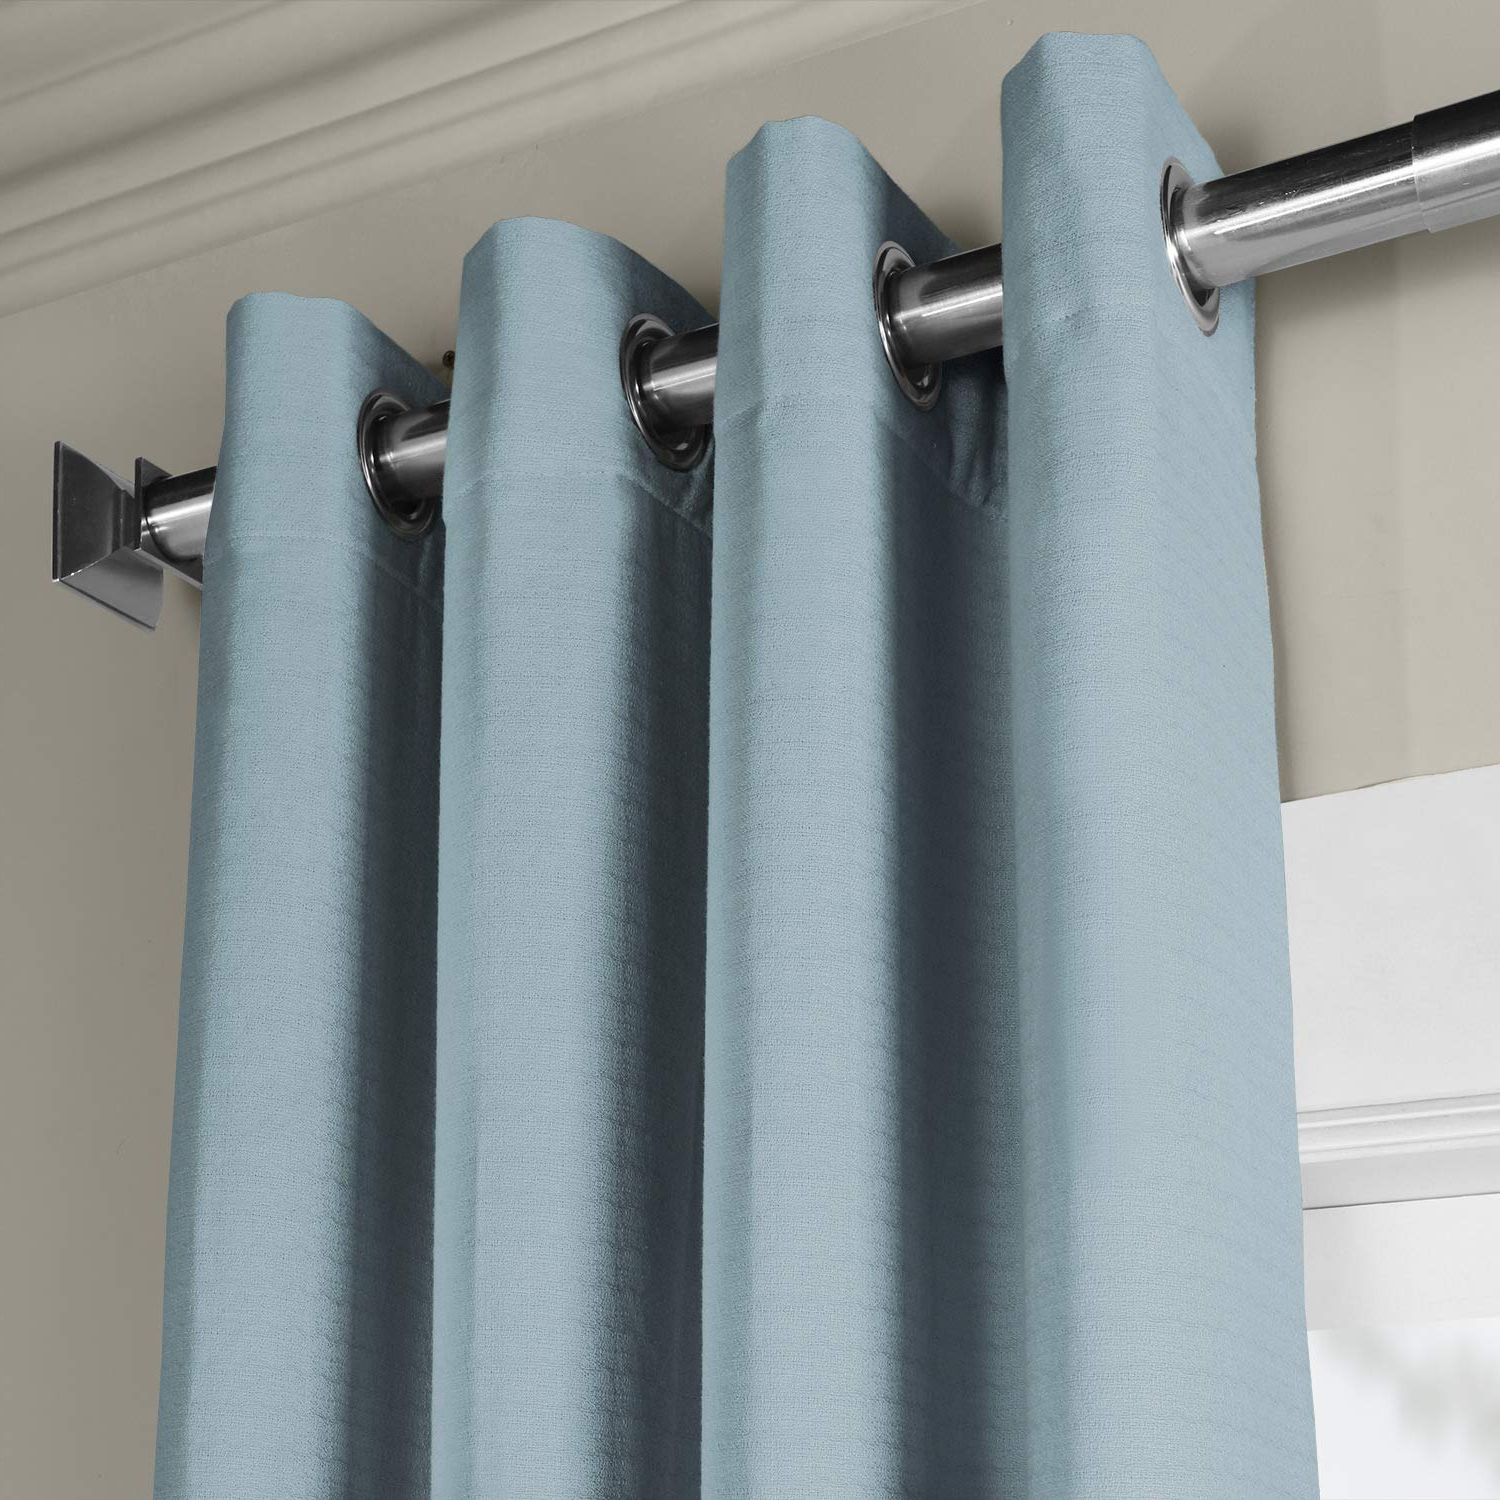 Fensterdekoration Hpd Half Price Drapes Bwlk 1856 120 Bark Throughout Latest Bark Weave Solid Cotton Curtains (View 14 of 20)